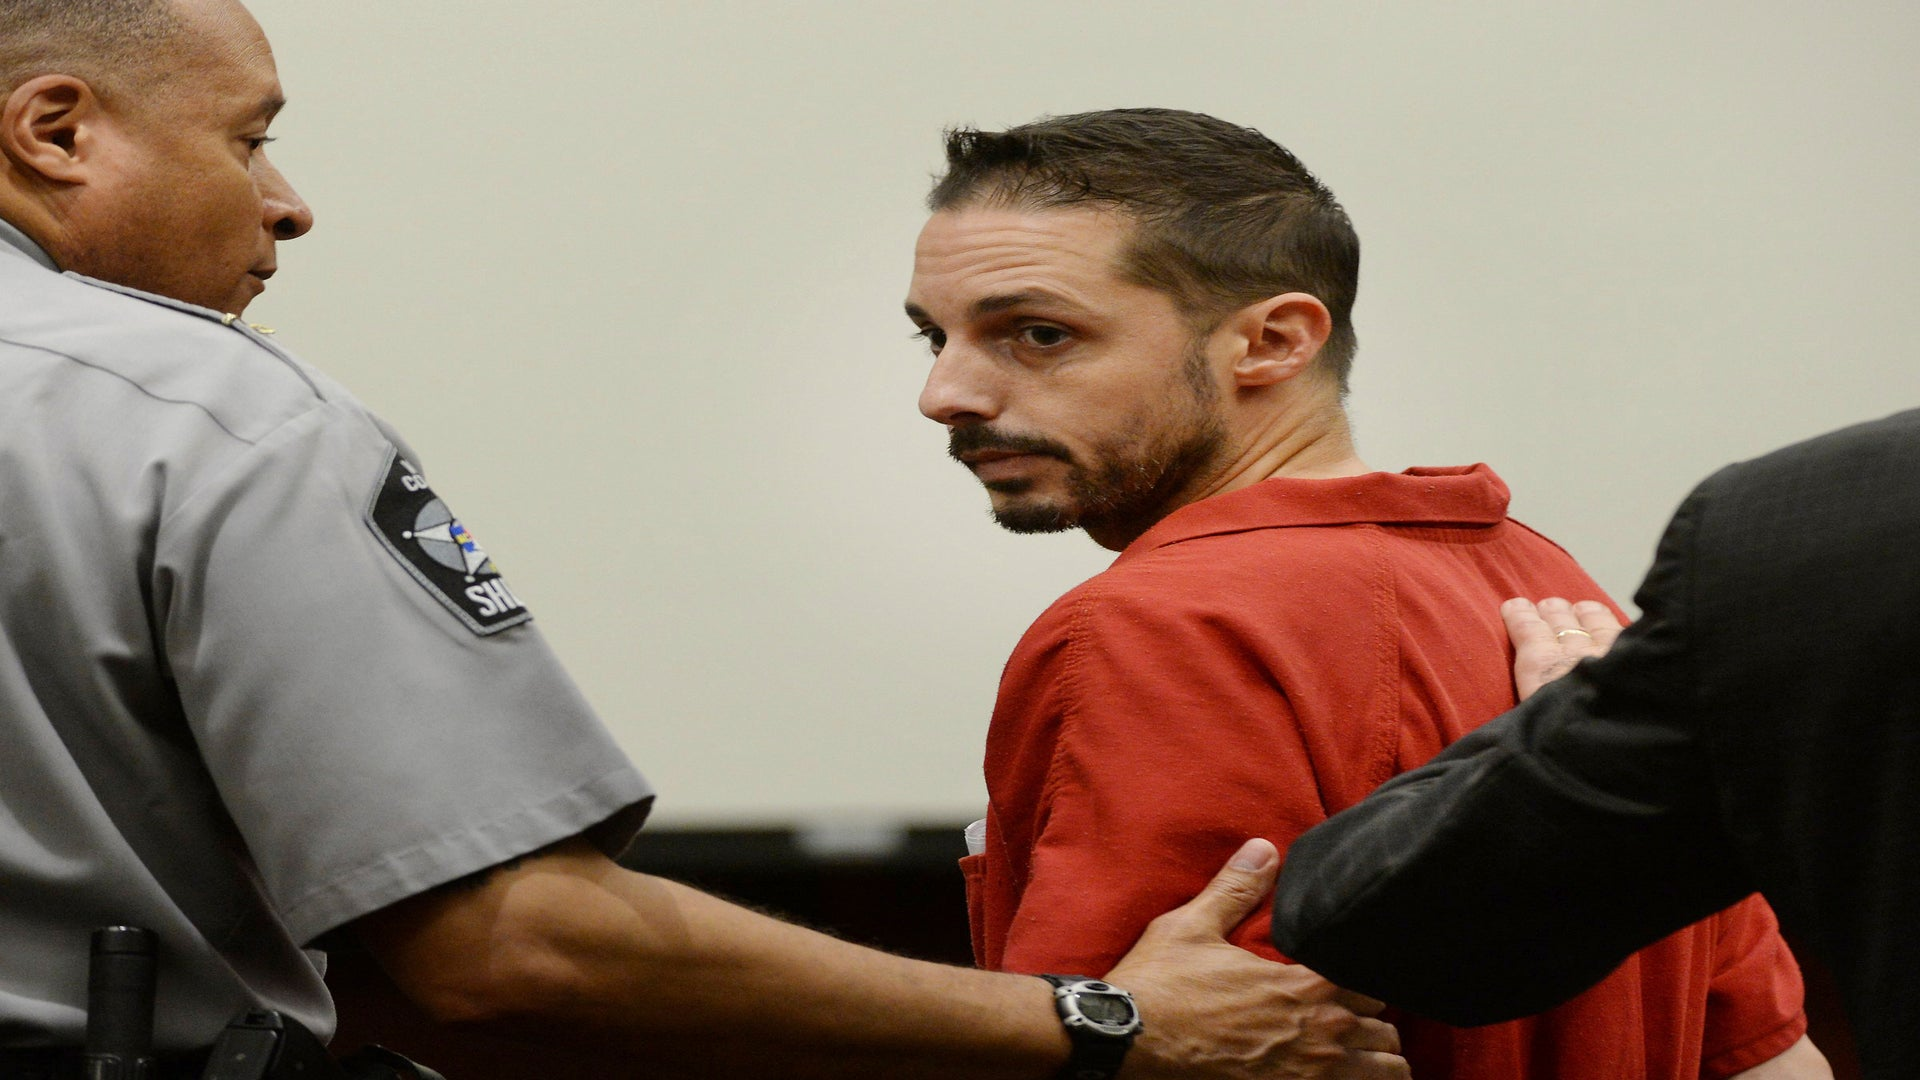 'George Zimmerman 2.0' Sentenced To Life In Prison For Killing Unarmed Black Man